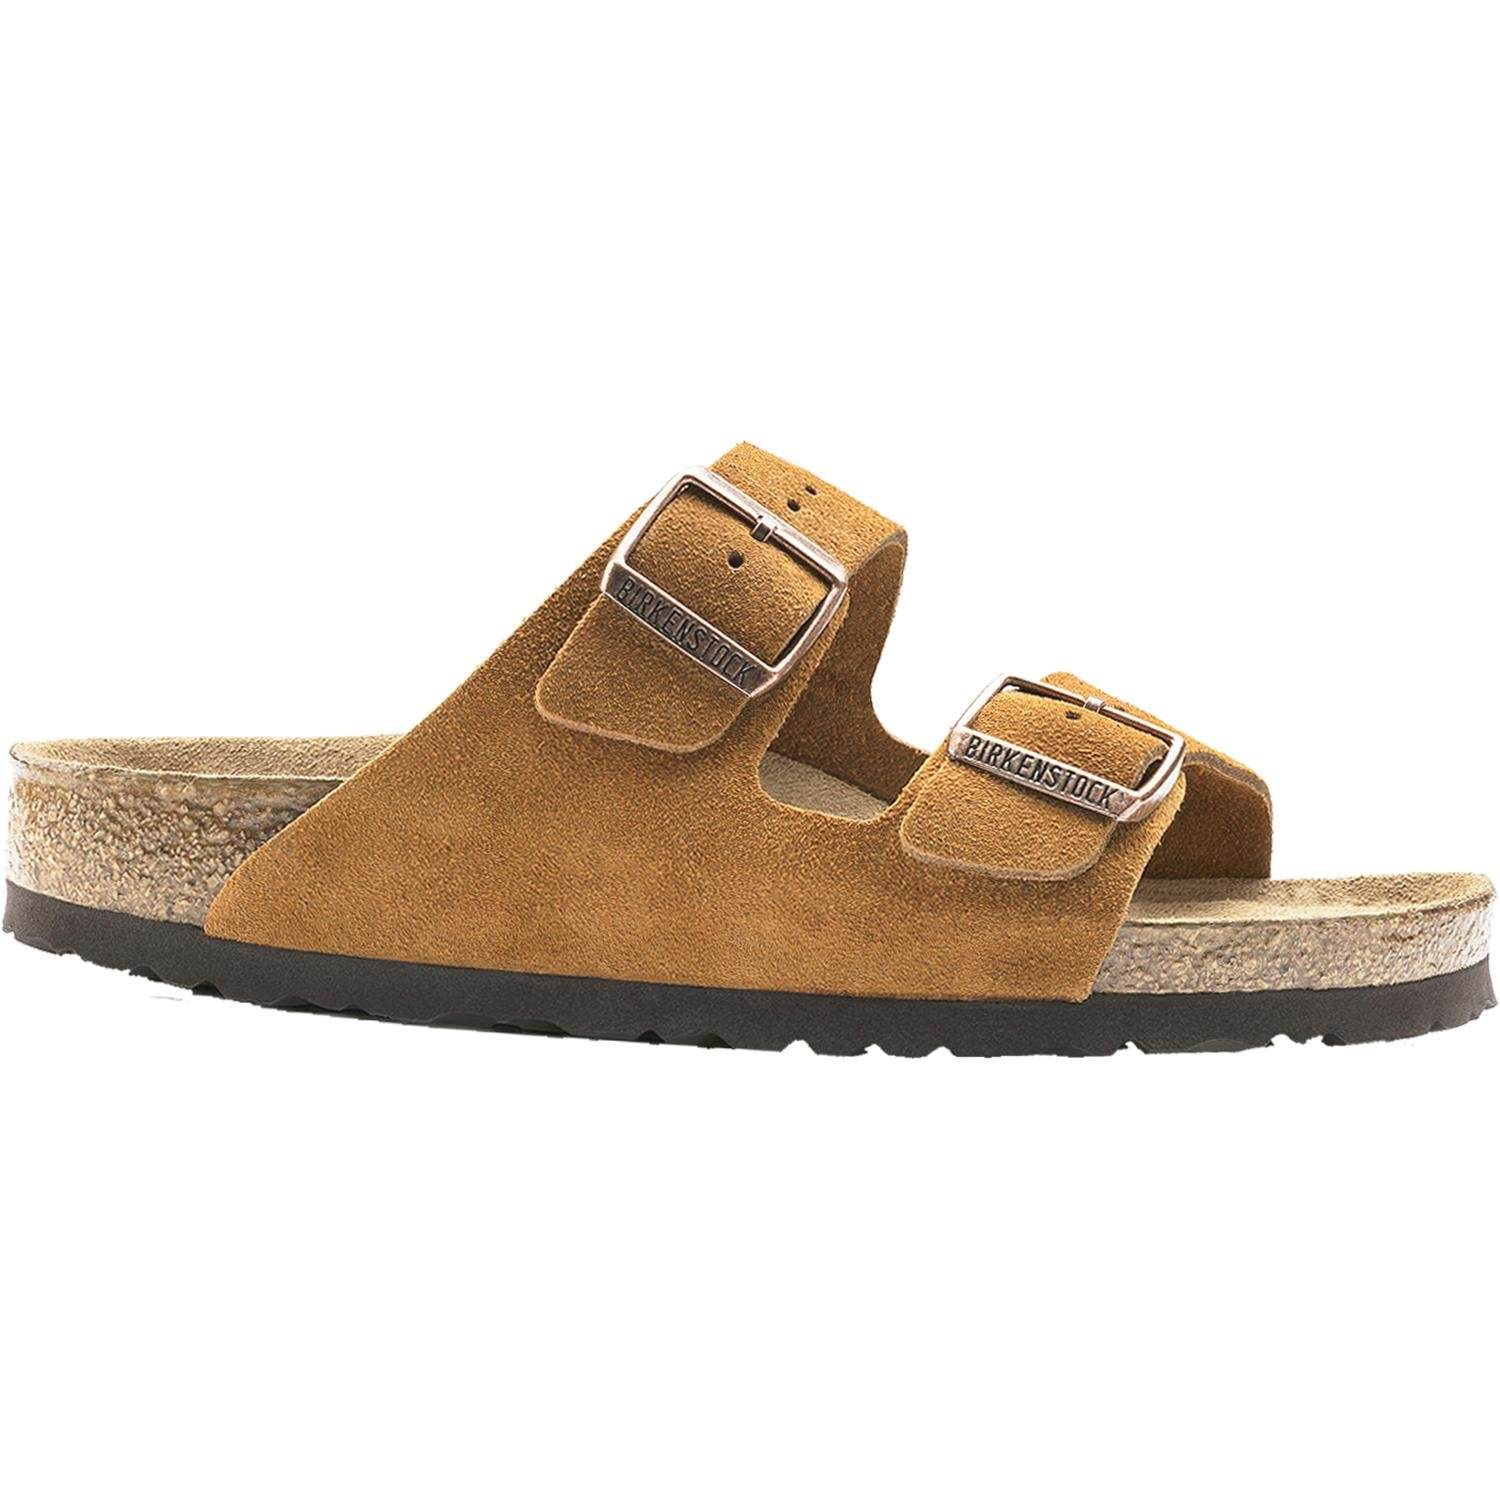 0209a2154f4c Galleon - Birkenstock Womens Arizona Soft Footbed Sandal